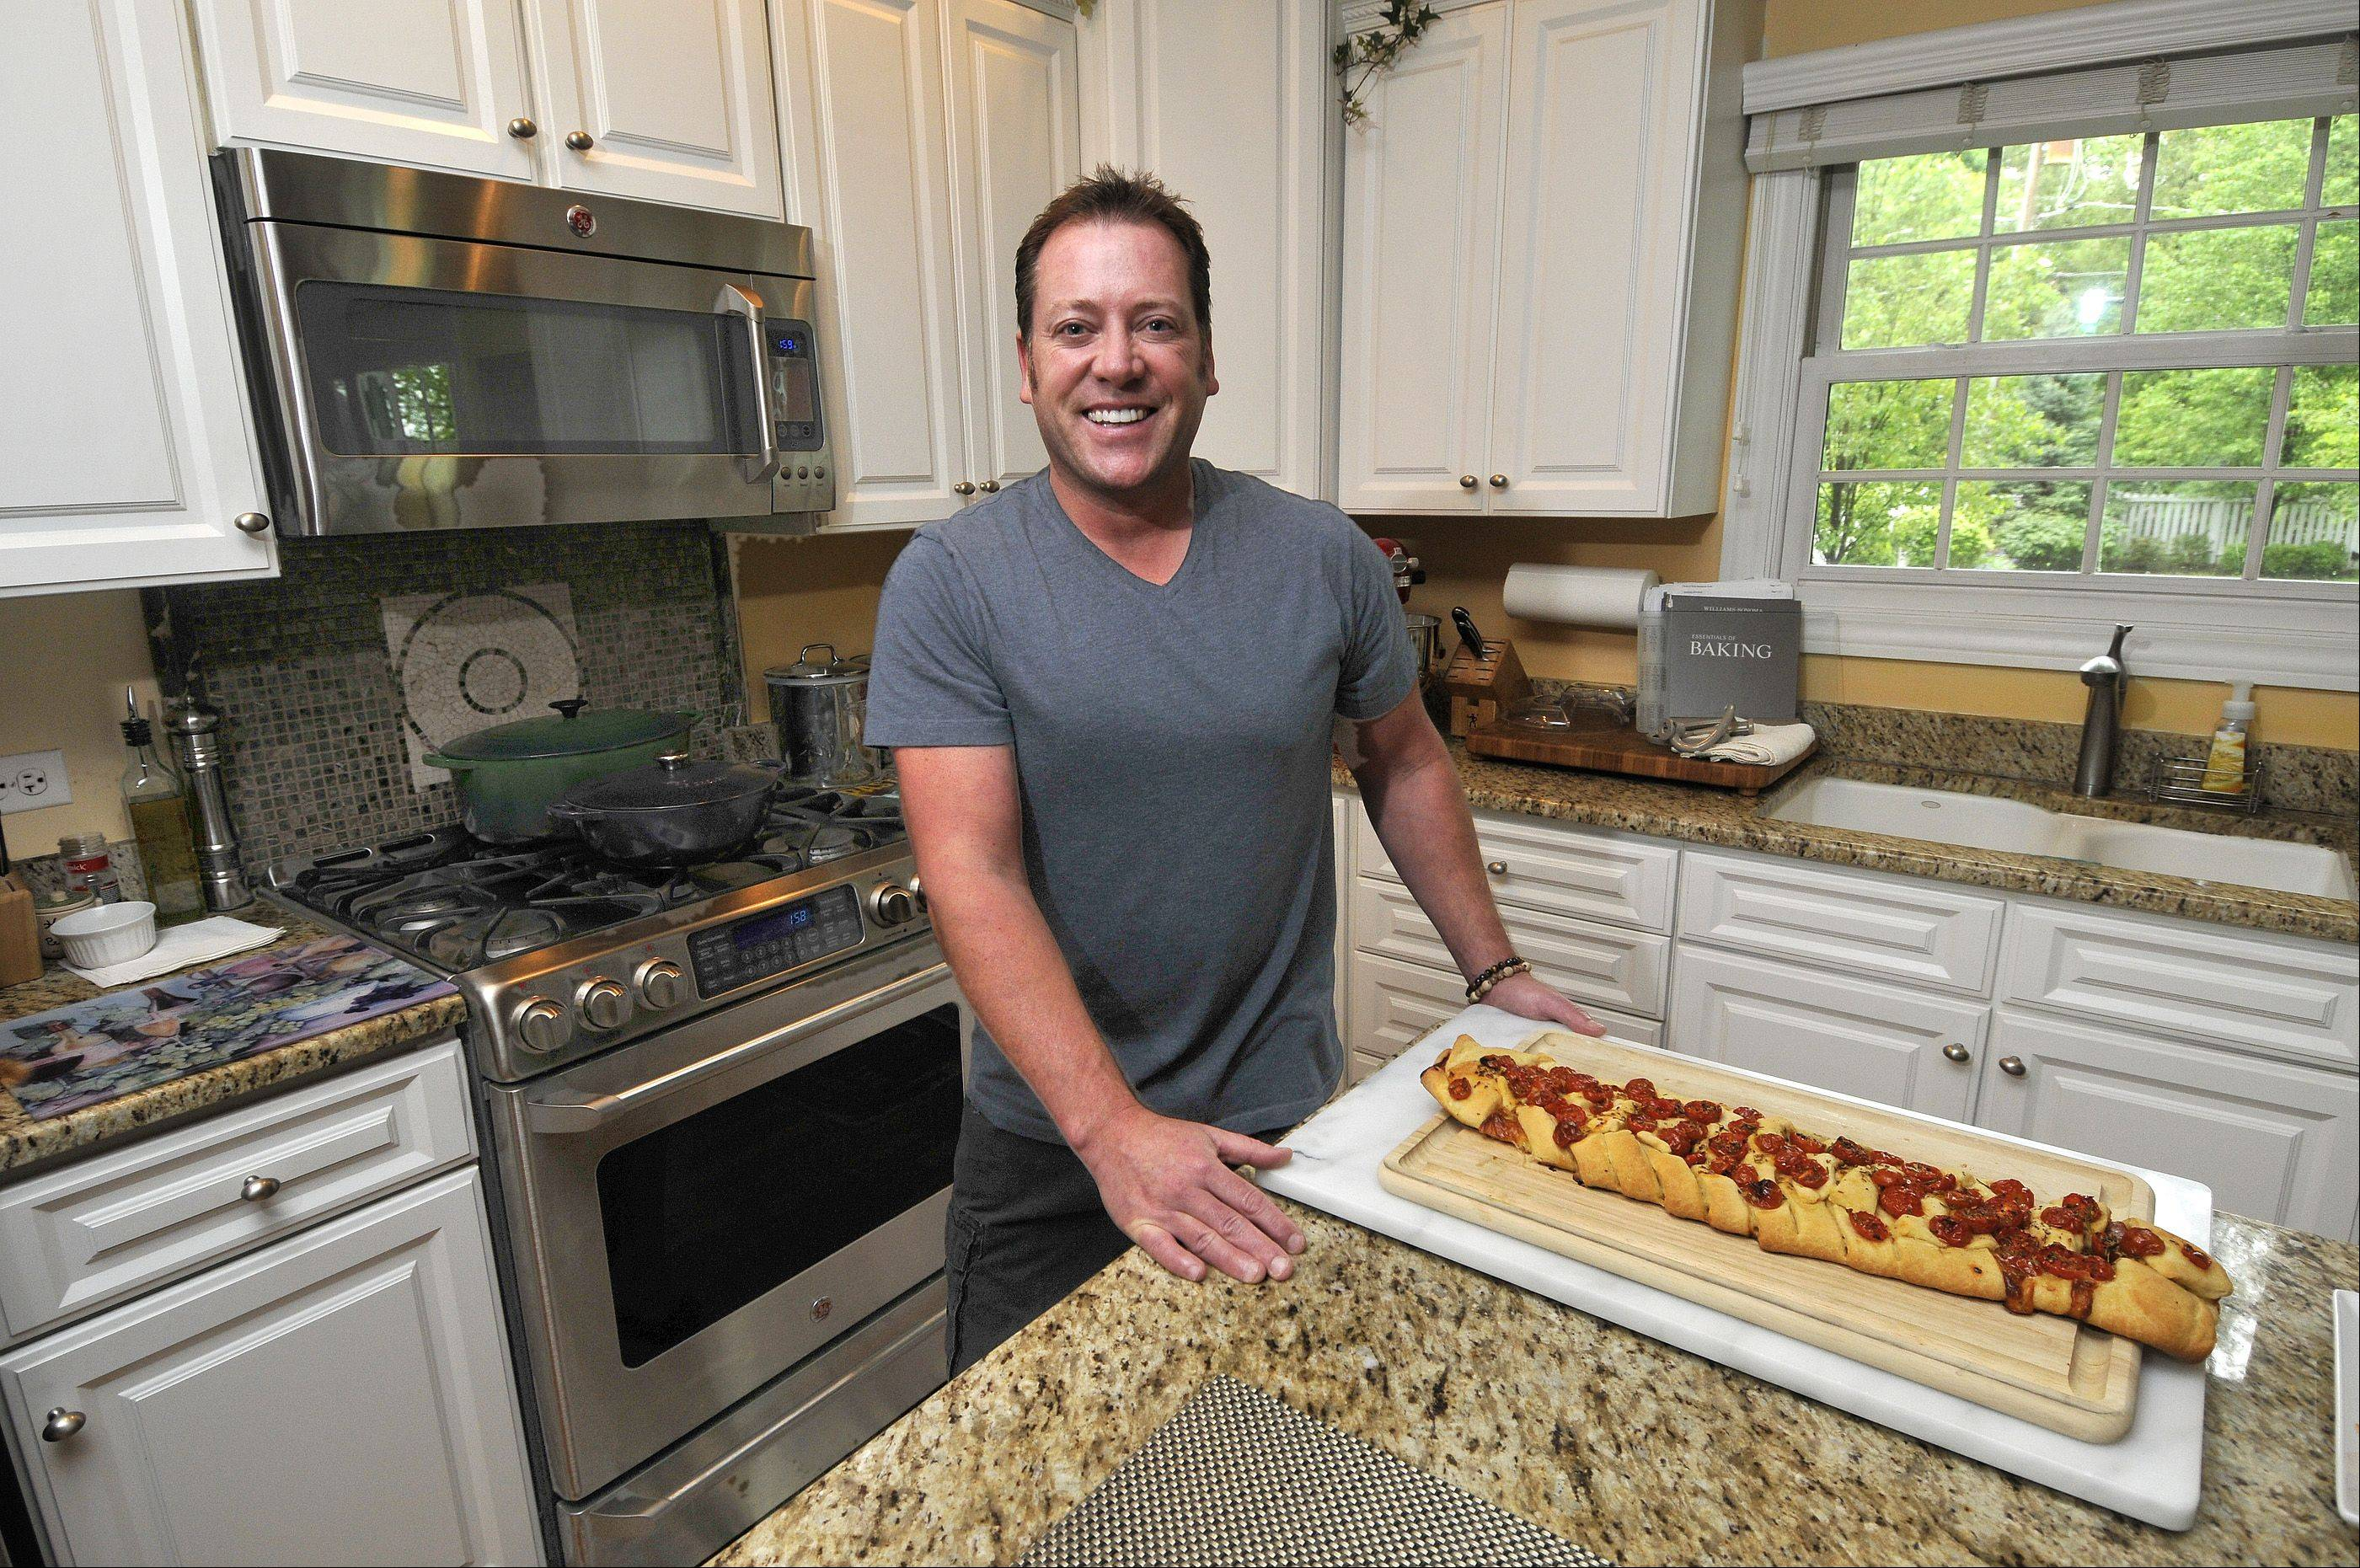 Brian Emmett, the Itasca dad who won CBS's America's Baking Competition, will demonstrate some of his favorite recipes at 10:30 a.m. Saturday at America's Baking and Sweets Show.